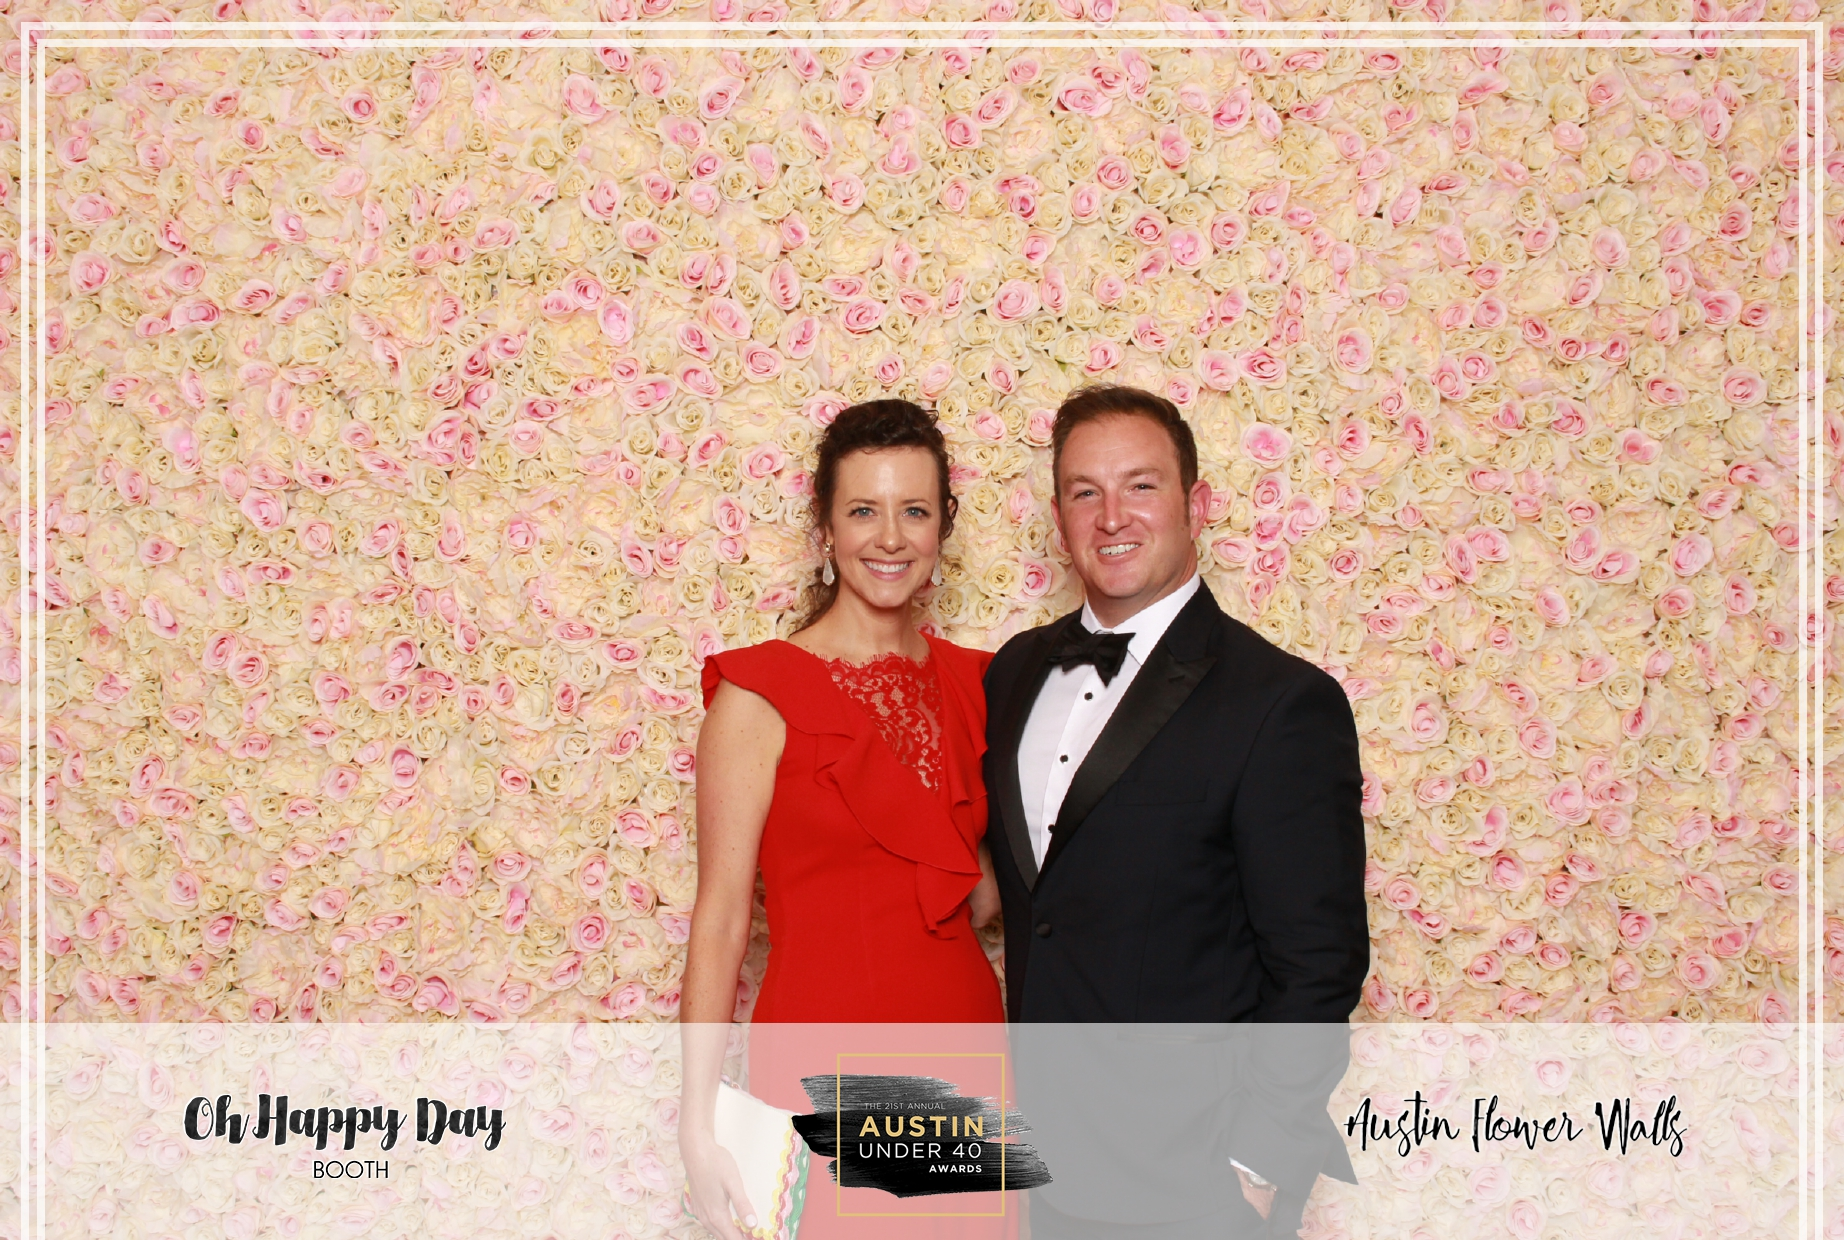 Oh Happy Day Booth - Austin Under 40-150.jpg